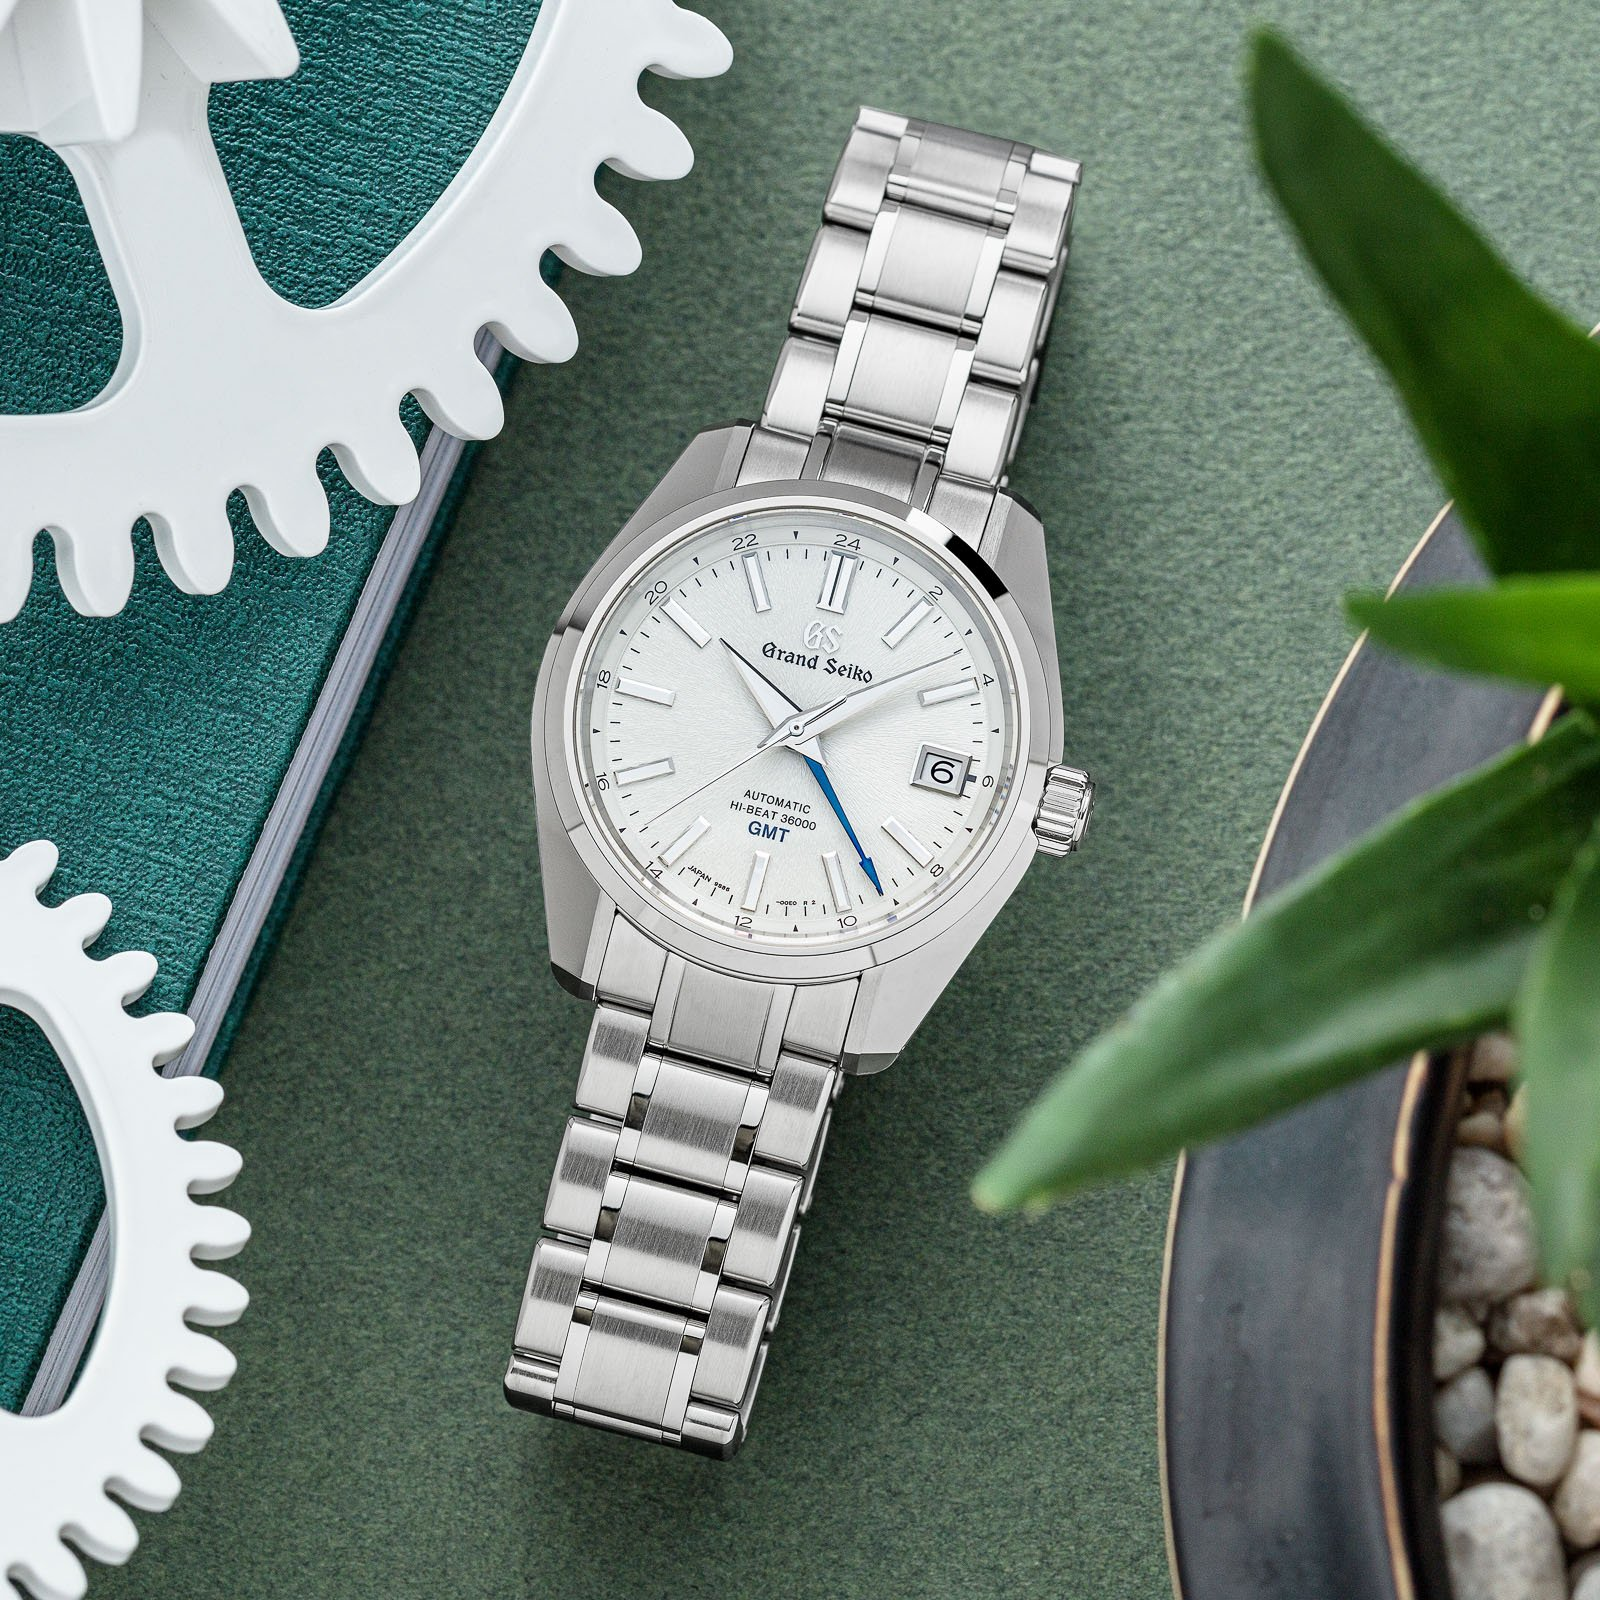 White textured dial wristwatch with a stainless steel case and bracelet.